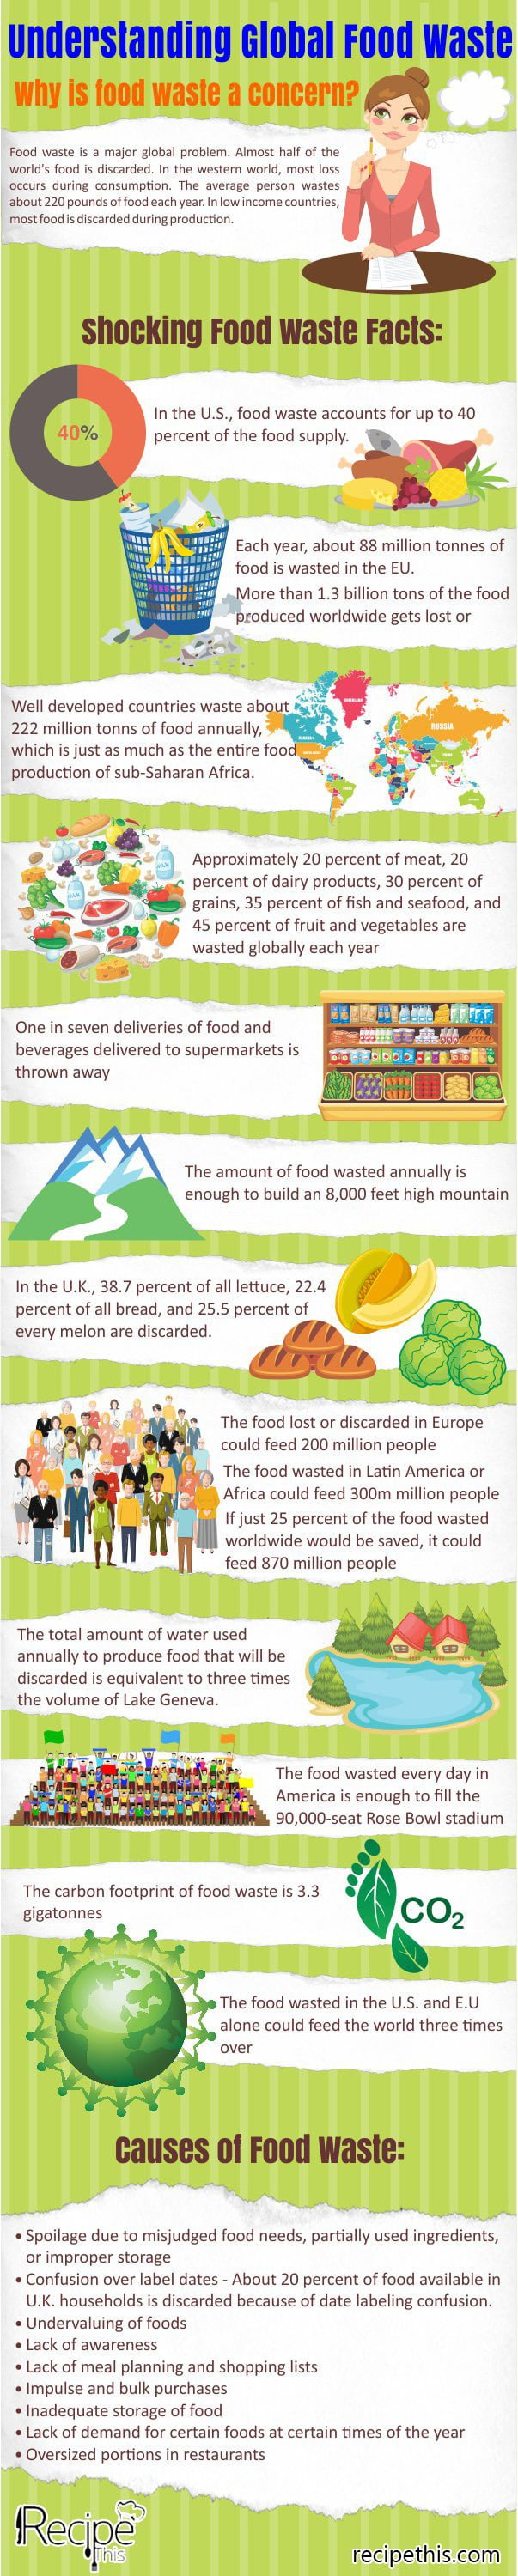 Understanding Global Food Waste brought to you by Recipethis.com